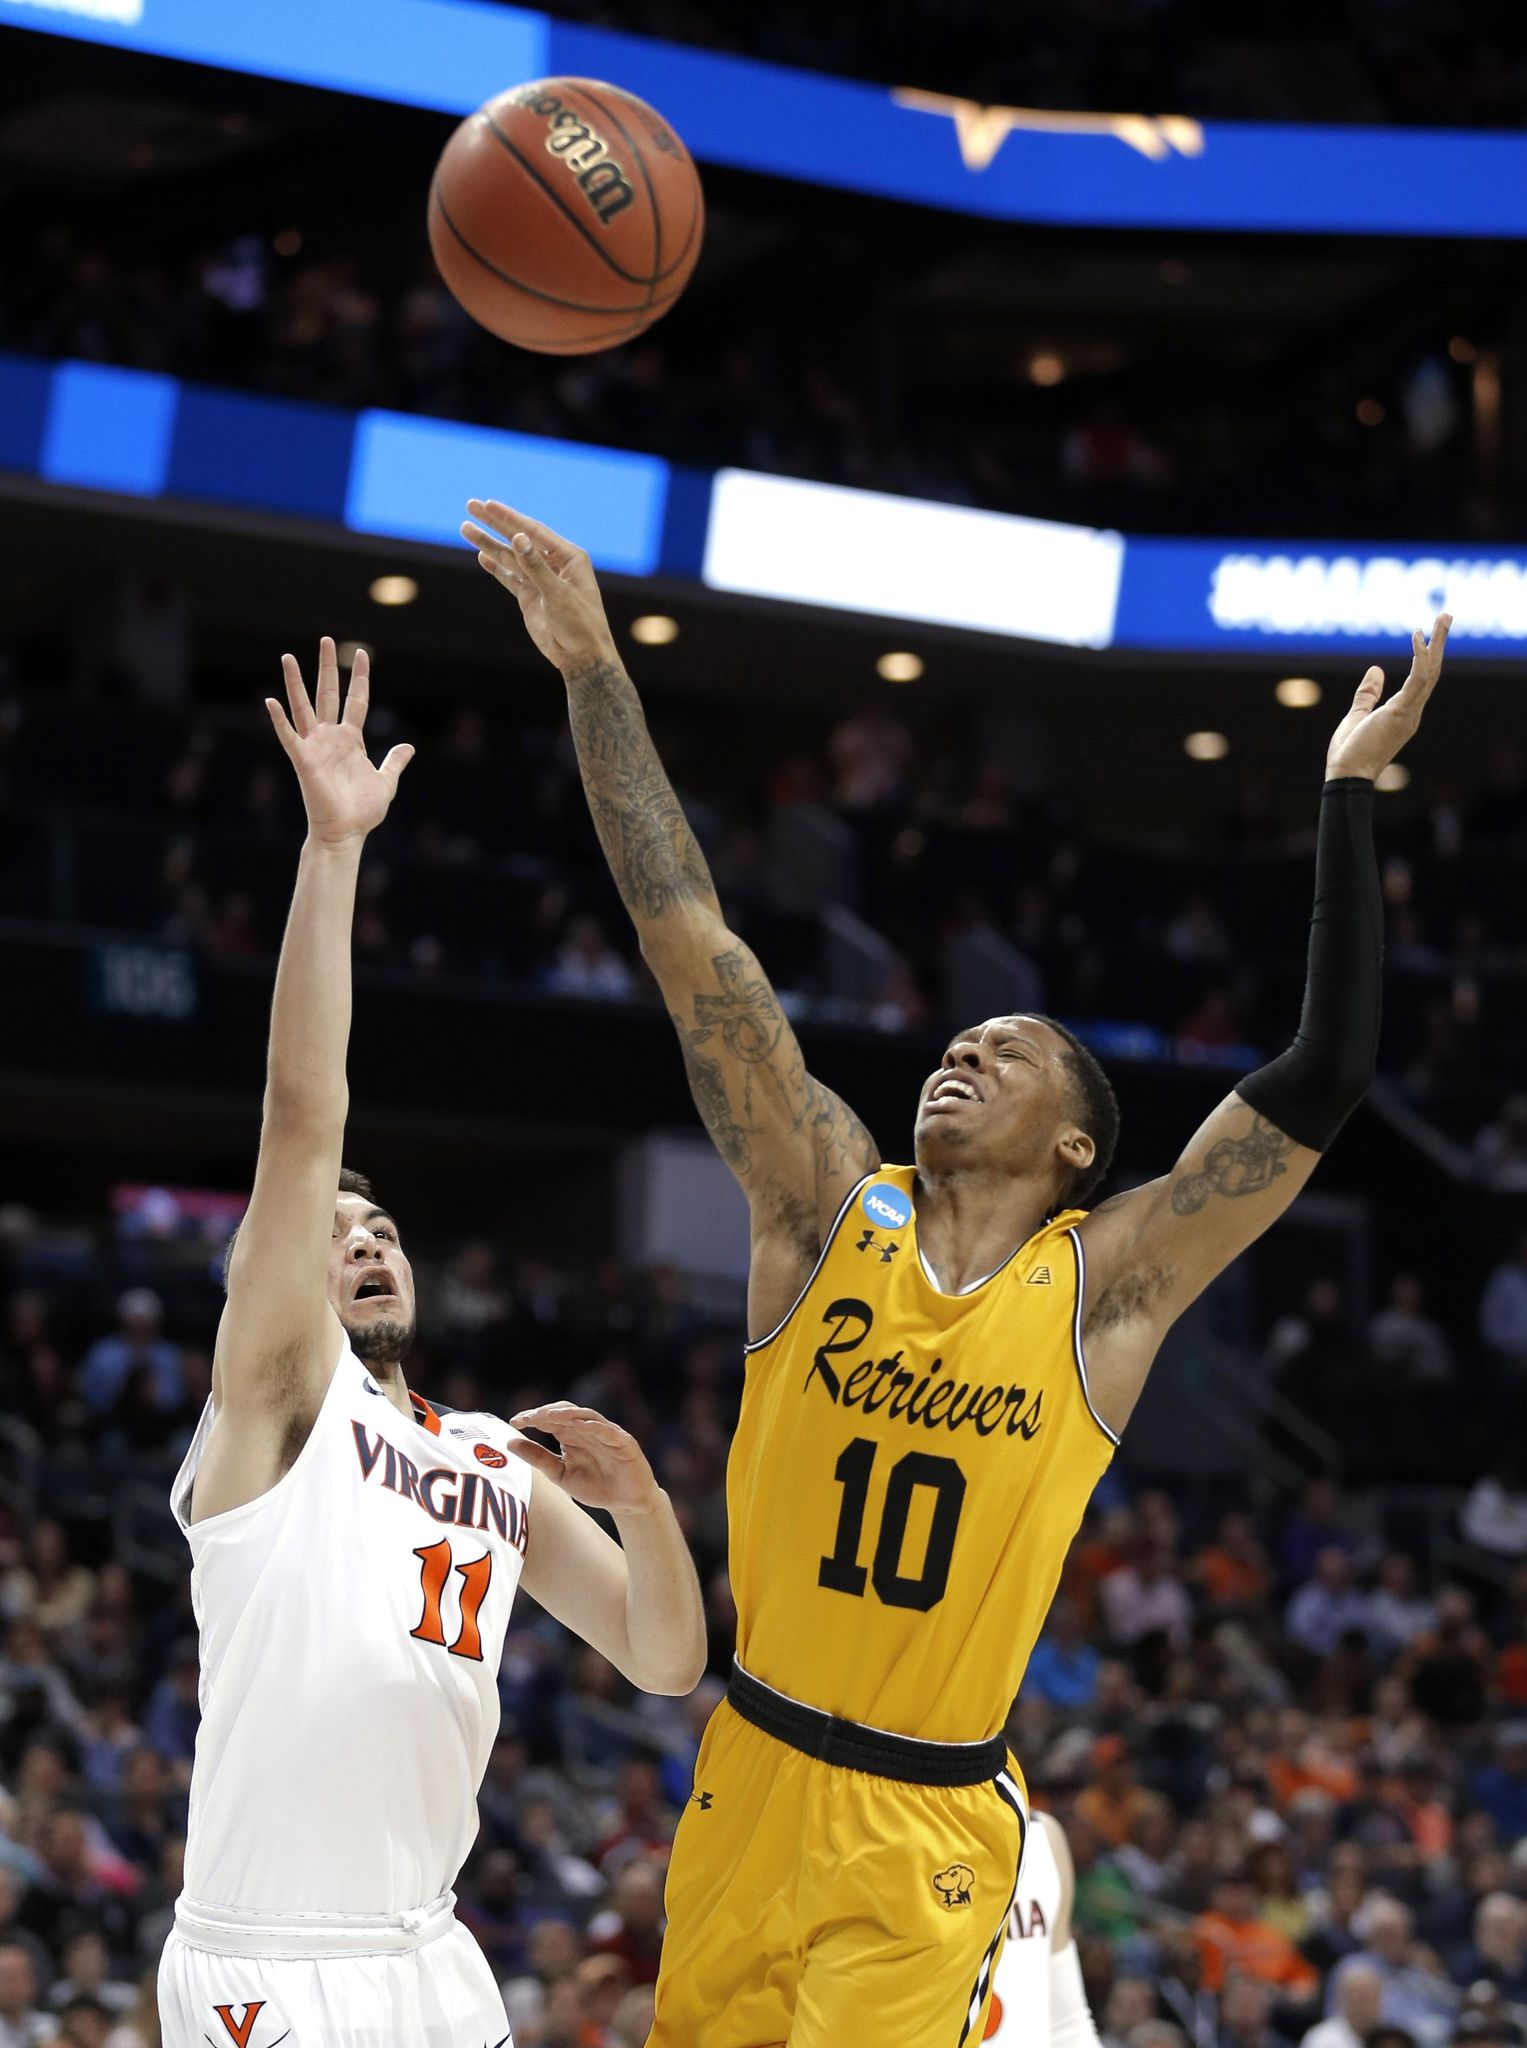 No. 16 UMBC stuns No. 1 Virginia 74-54 to make NCAA history - Washington  Times 315e7bf98